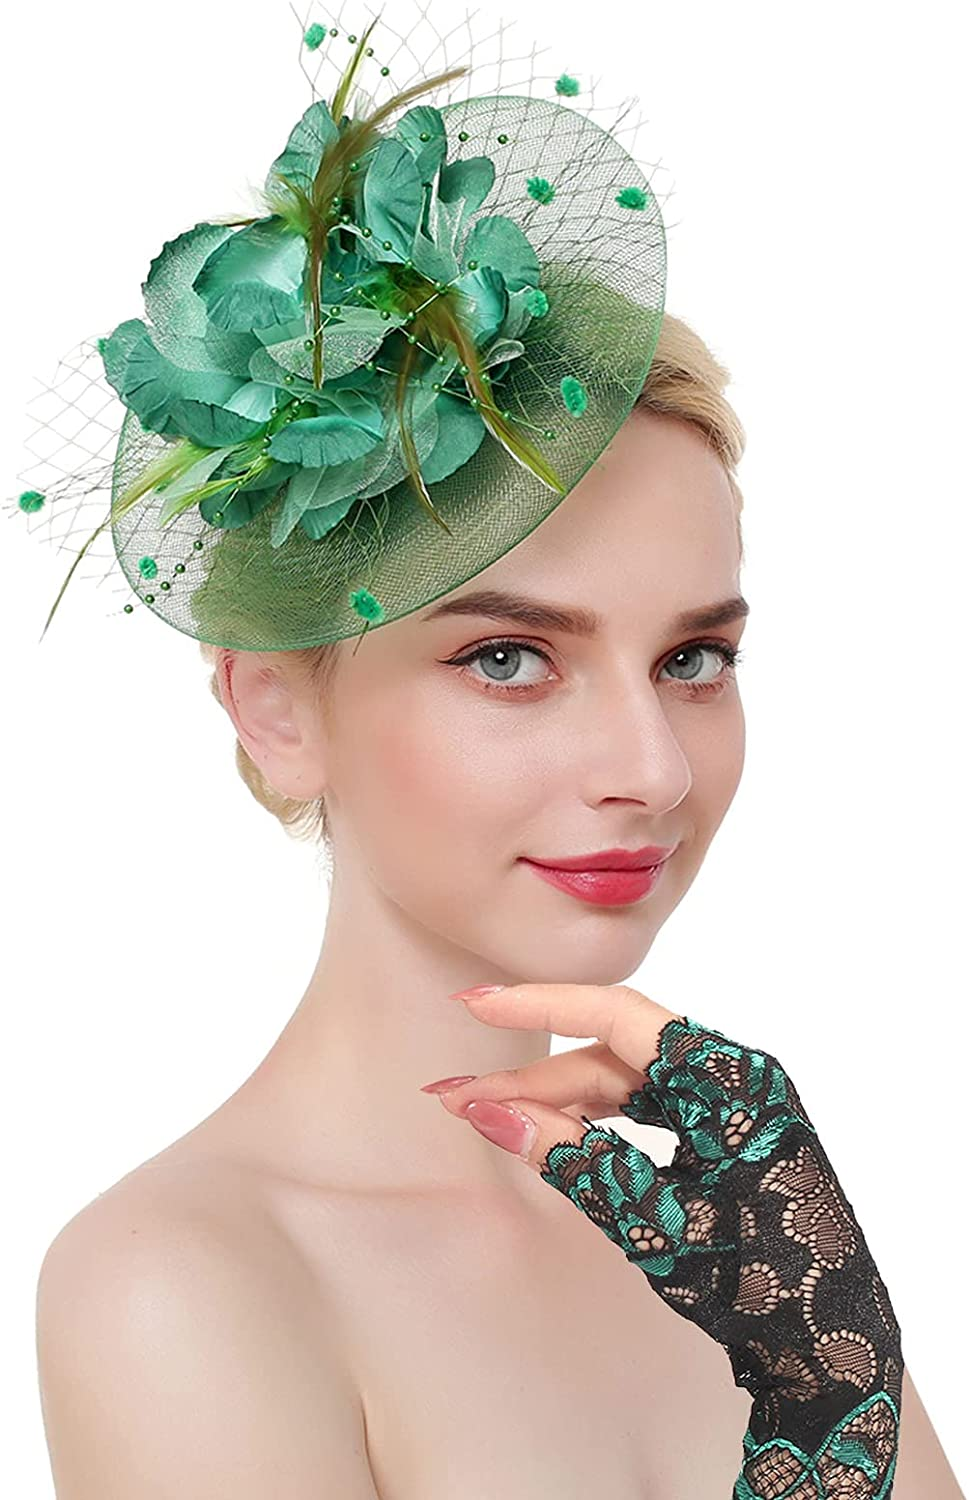 Luxury Ibeauti Fascinator Hats with Screentouch Lace Wom for Challenge the lowest price of Japan Gloves Set